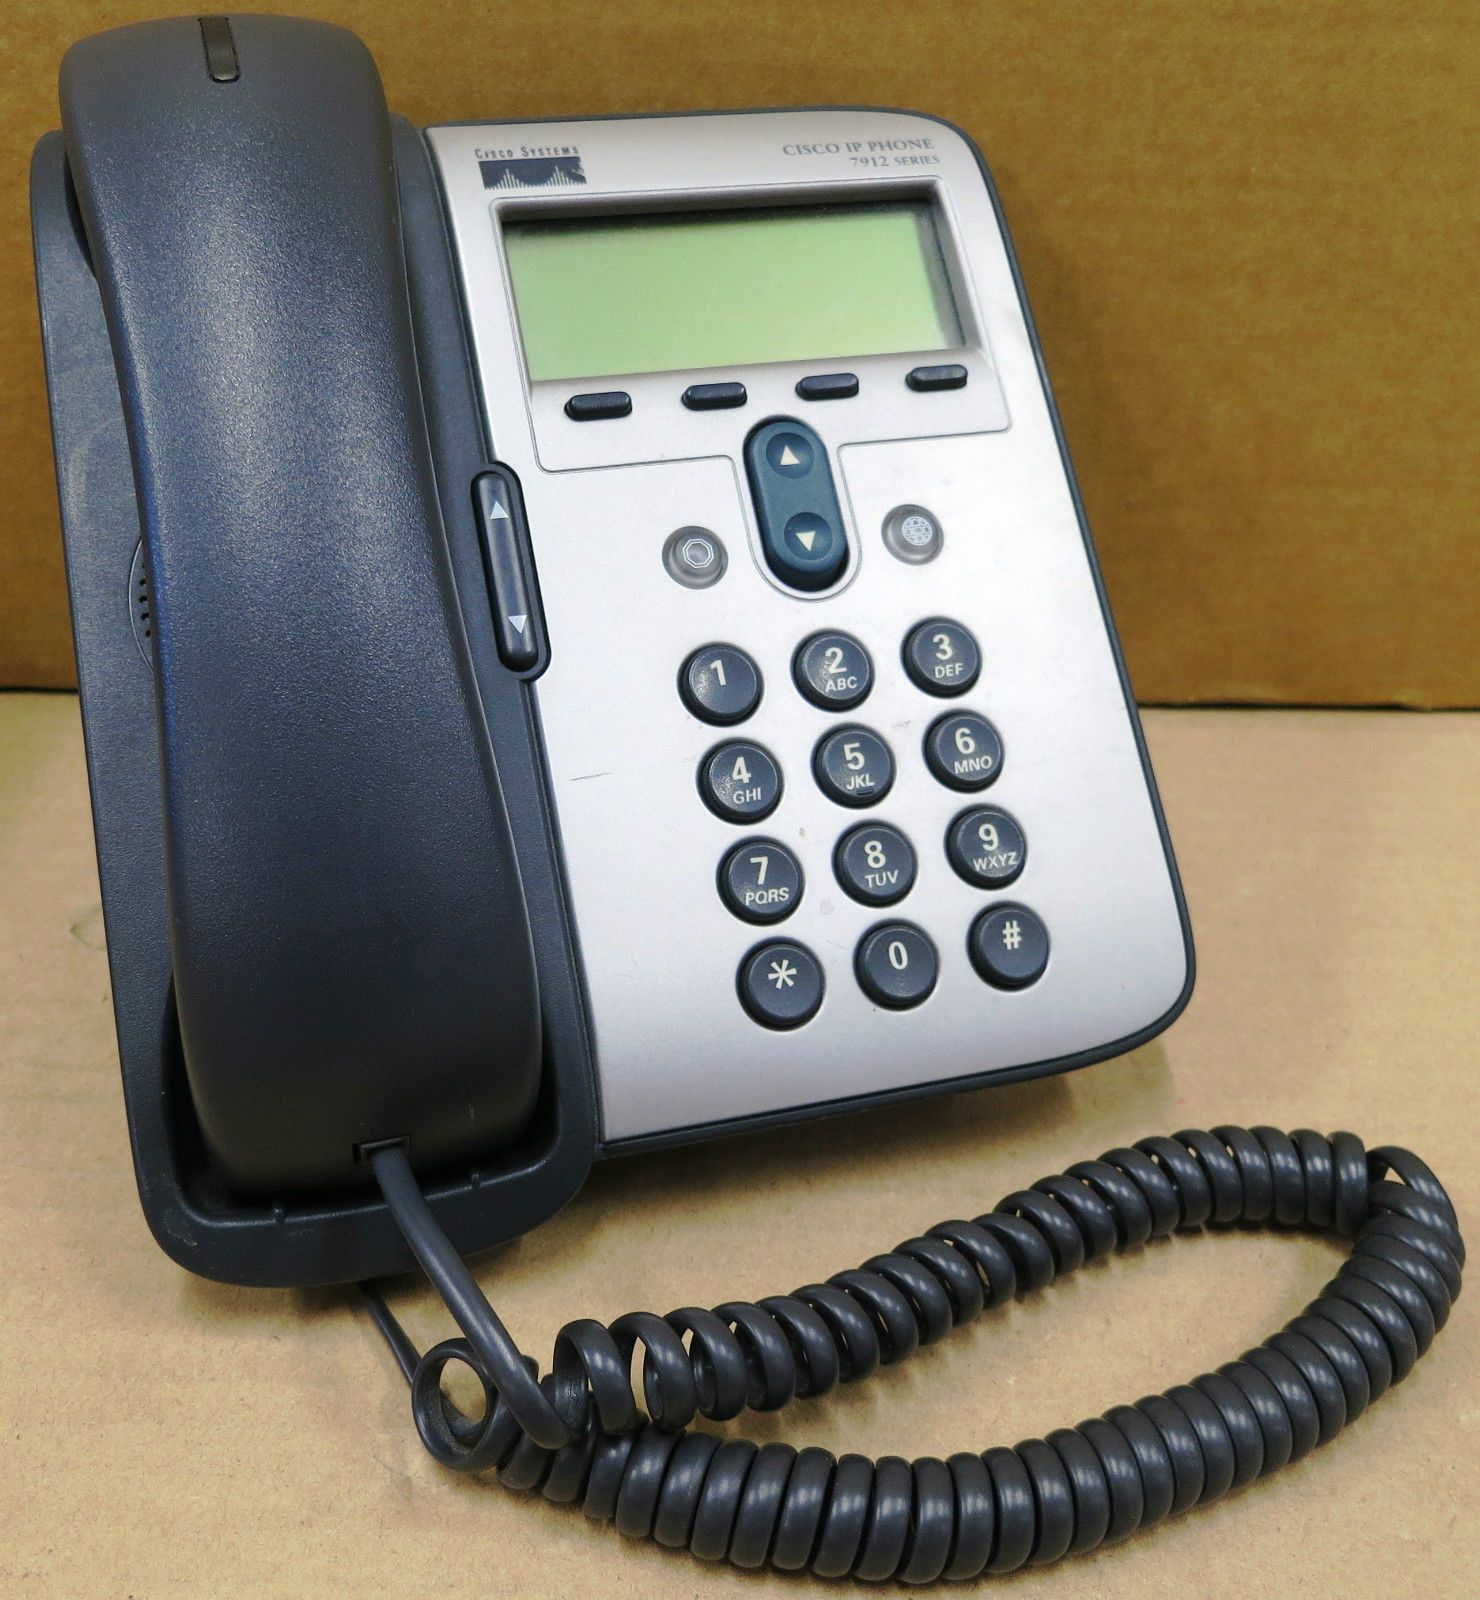 Cisco Ip Phone 7912 Cp 7912g A 74 3781 06 Business Desktop Telephone Stand